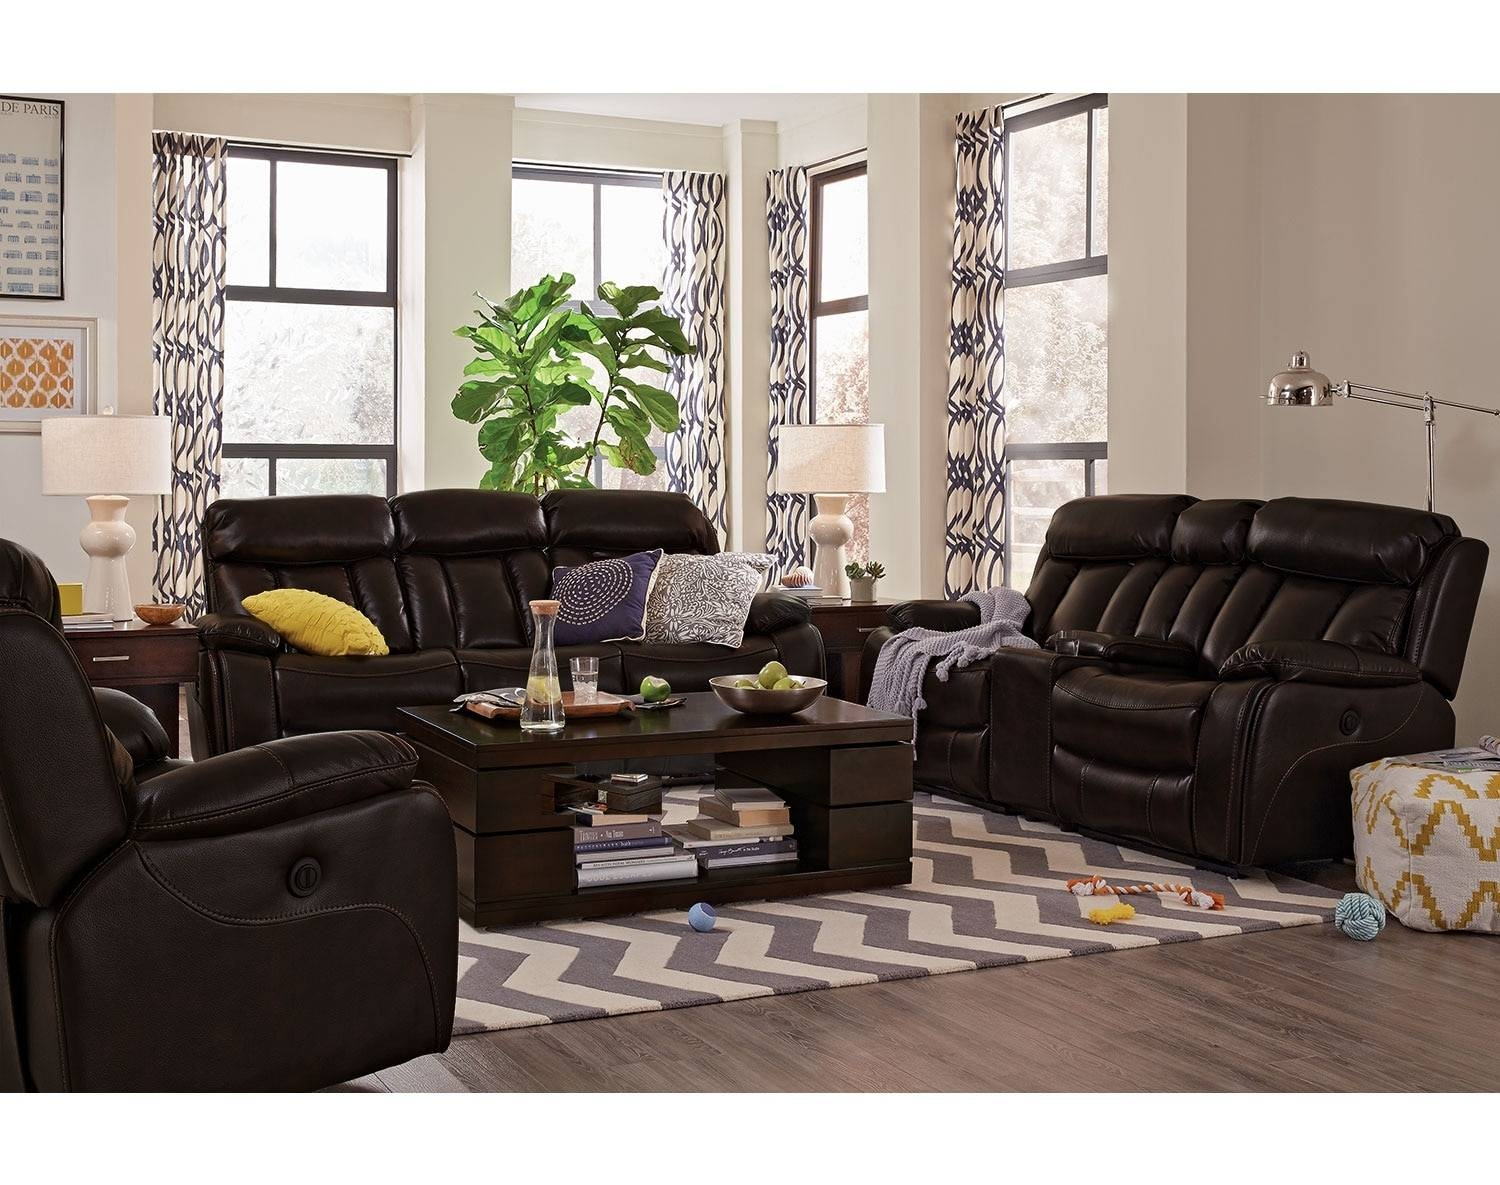 Living Room Collections | Value City Furniture intended for Living Room Sofas And Chairs (Image 7 of 15)